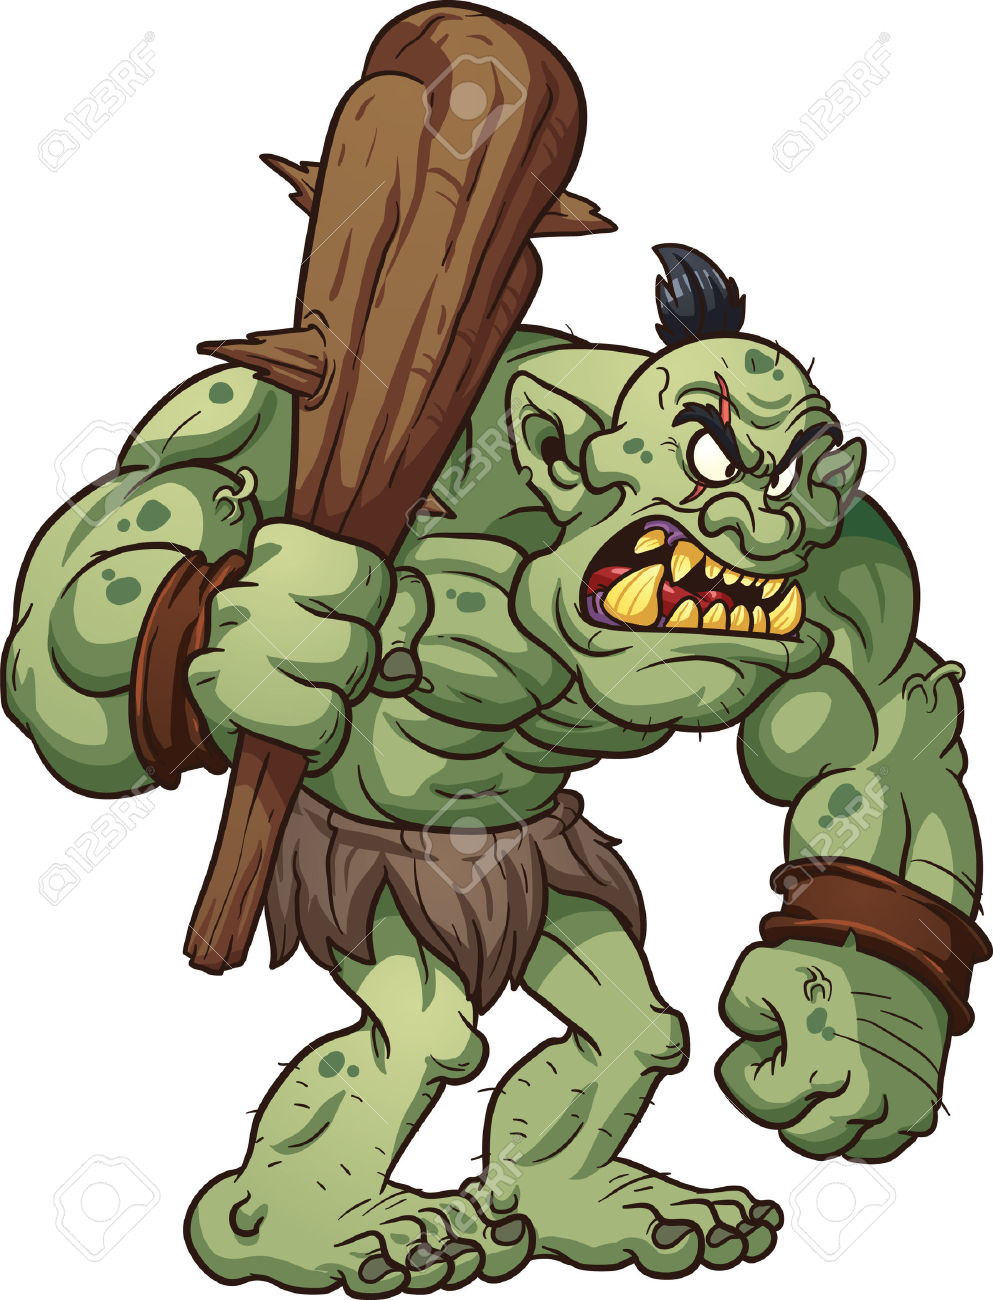 Troll clipart #19, Download drawings